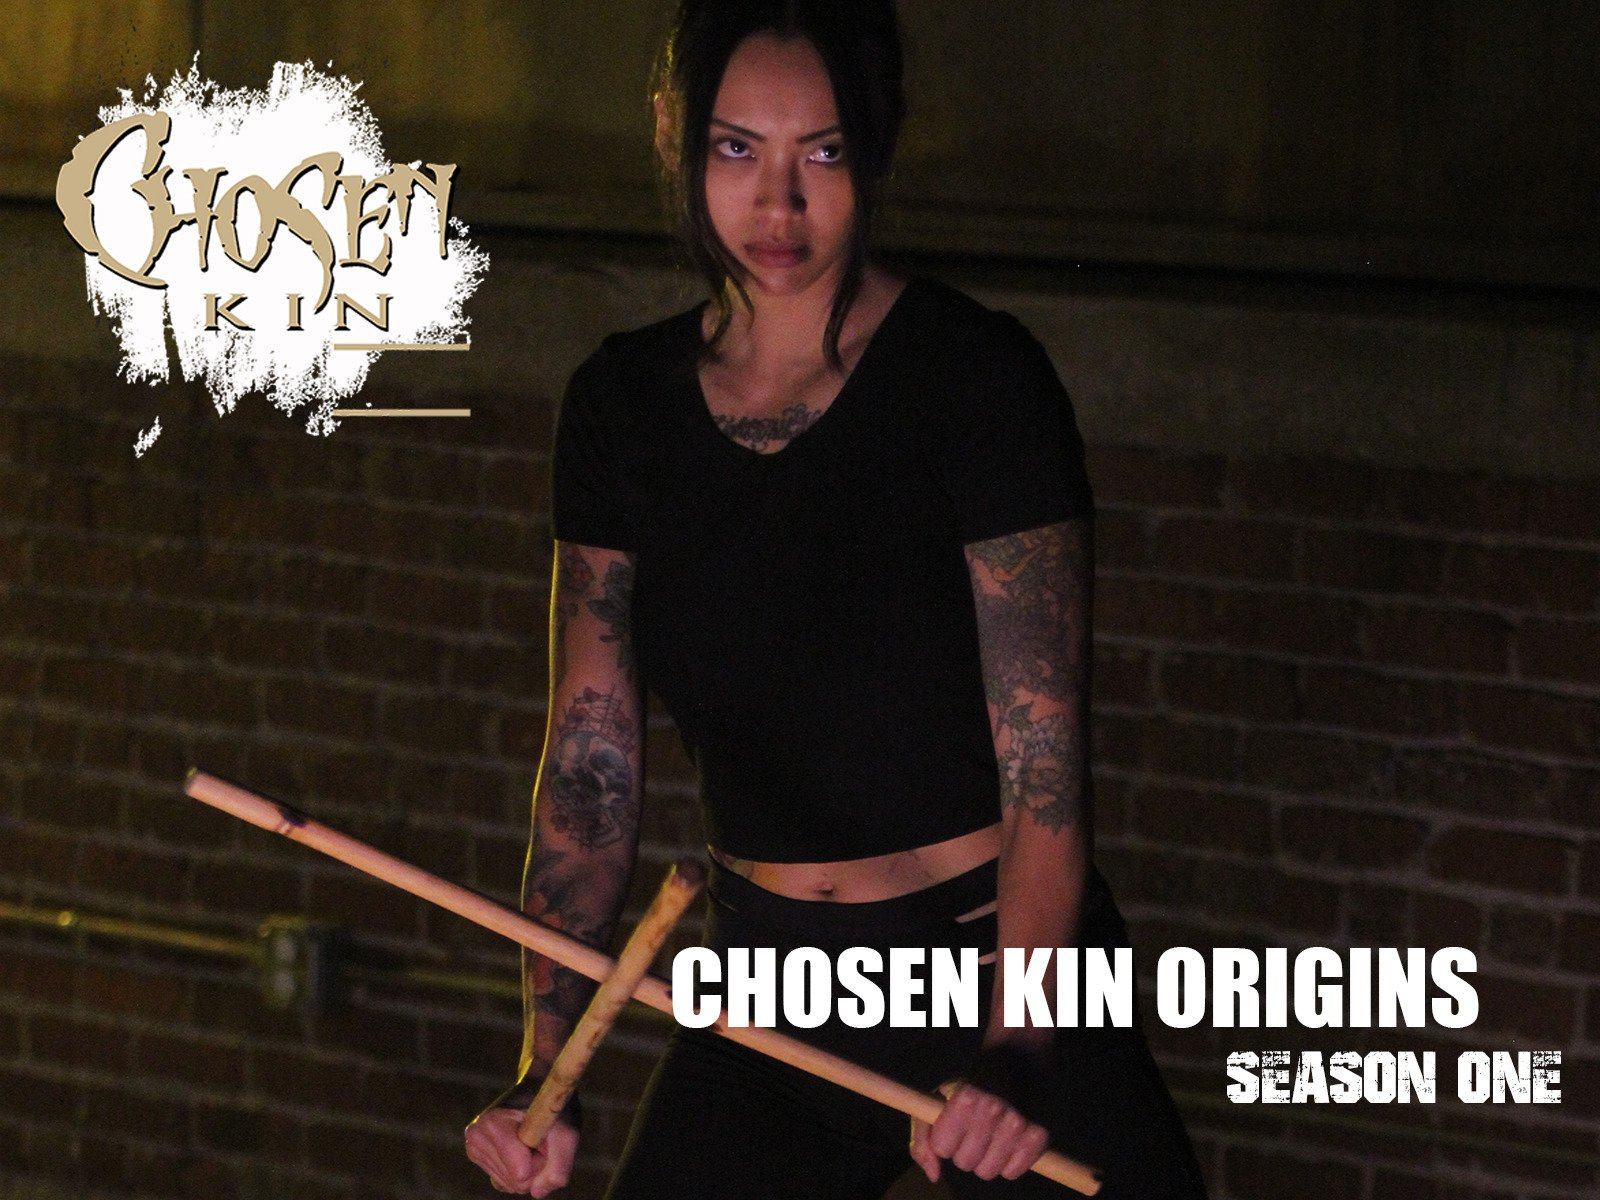 Chosen Kin Origins - Season 1